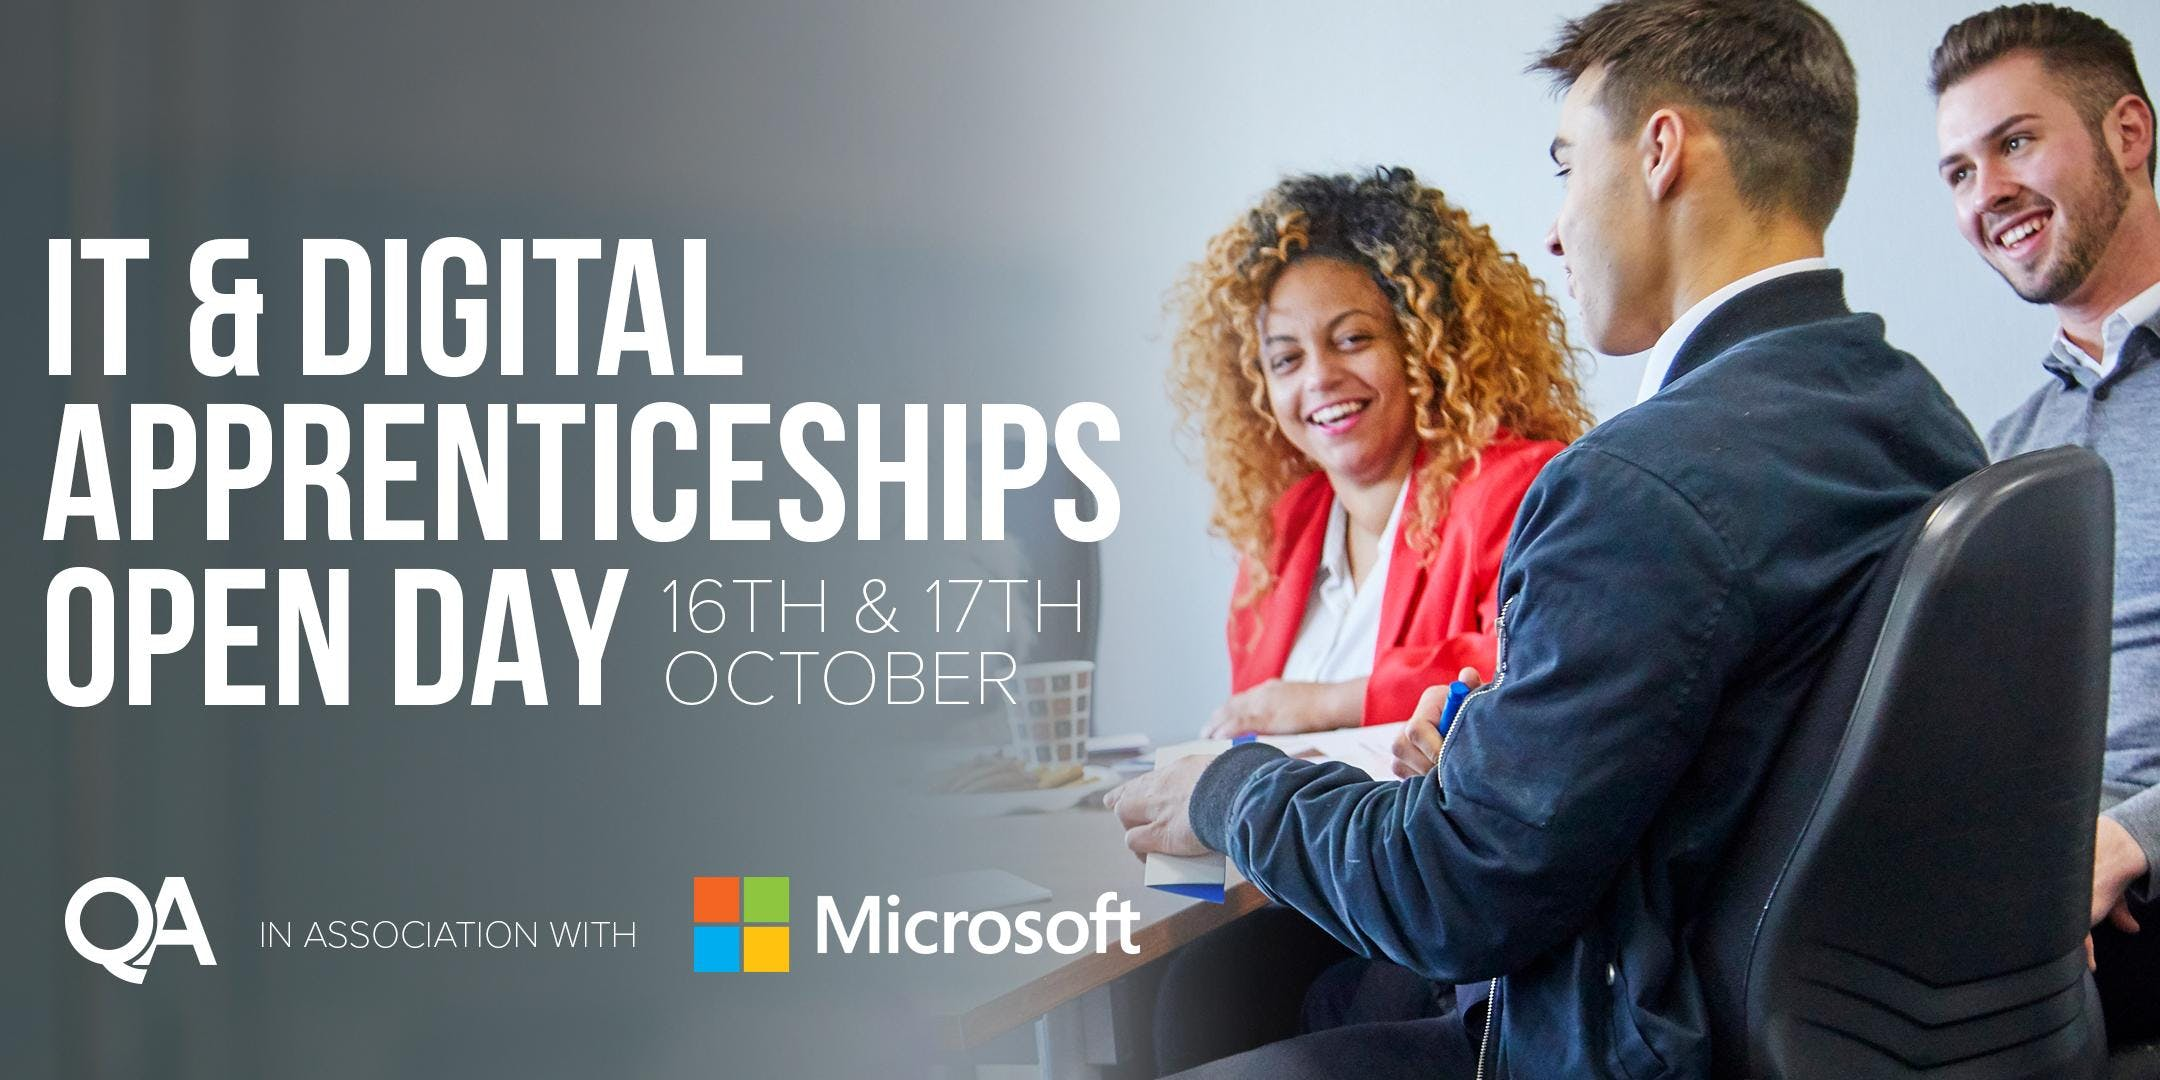 IT and Digital Apprenticeships Open Days